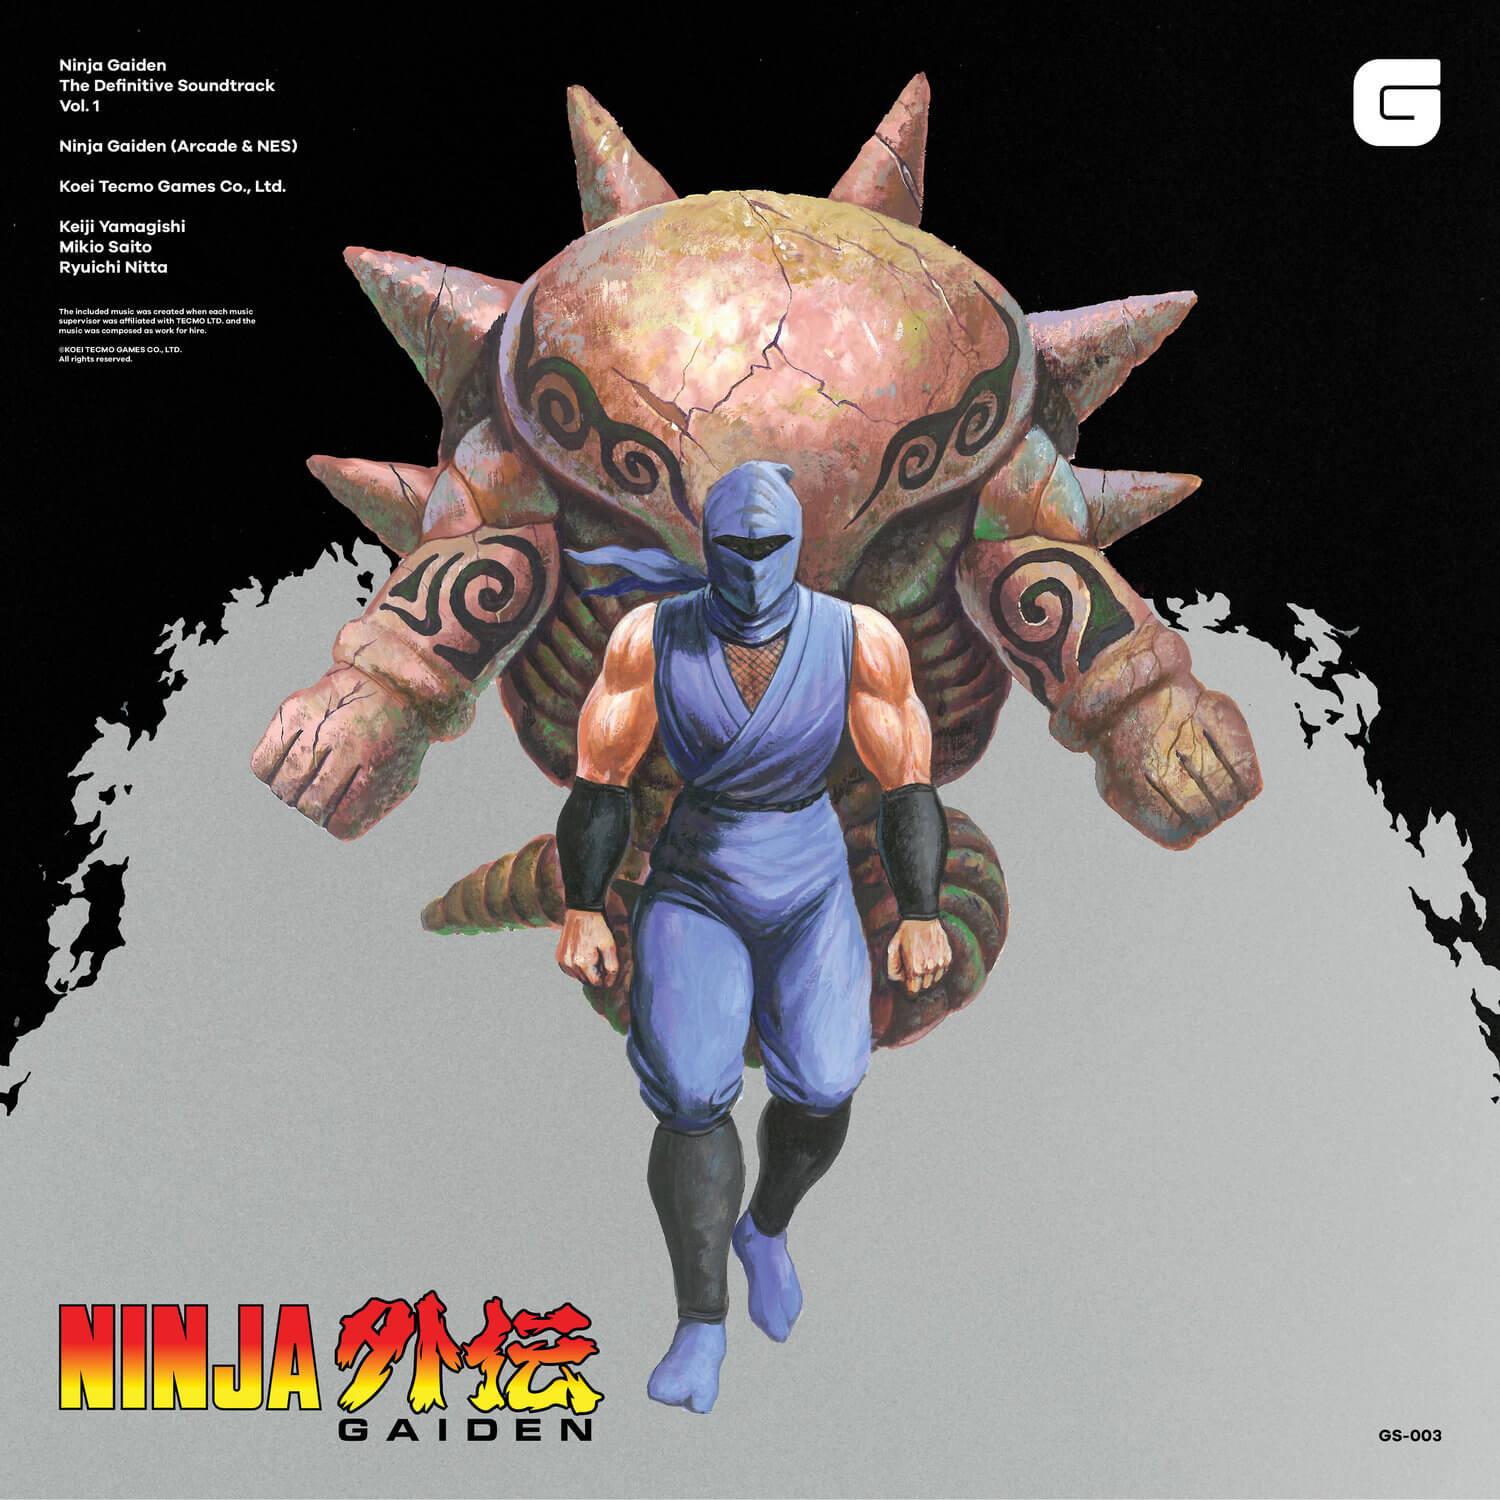 Ninja Gaiden Trilogy Soundtrack 1